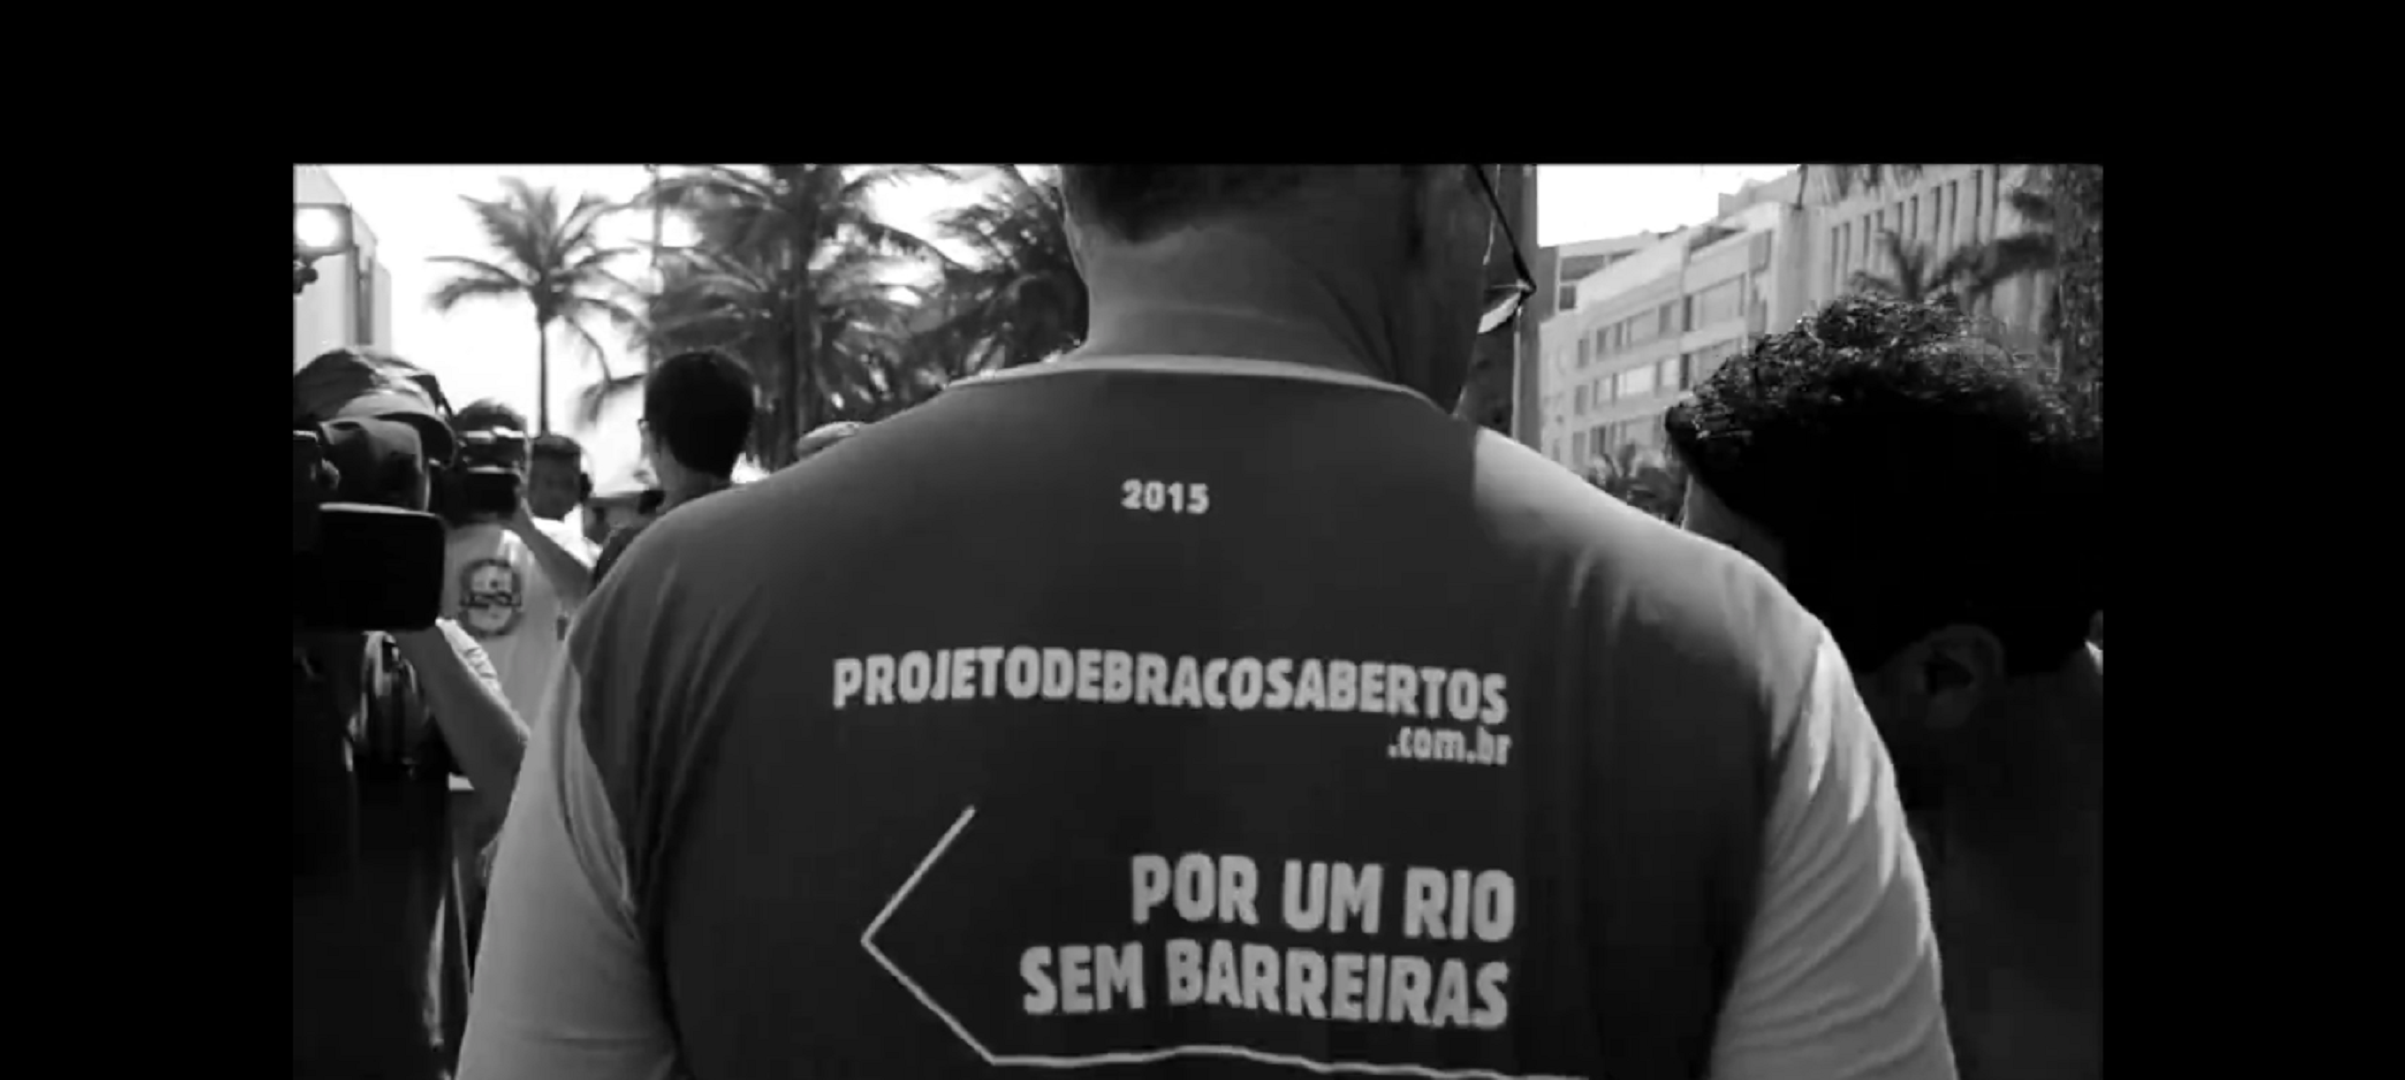 Secretary Beltrame with the t-shirt cited in the text. Image: Hare Brasil - Coletivo Carranca